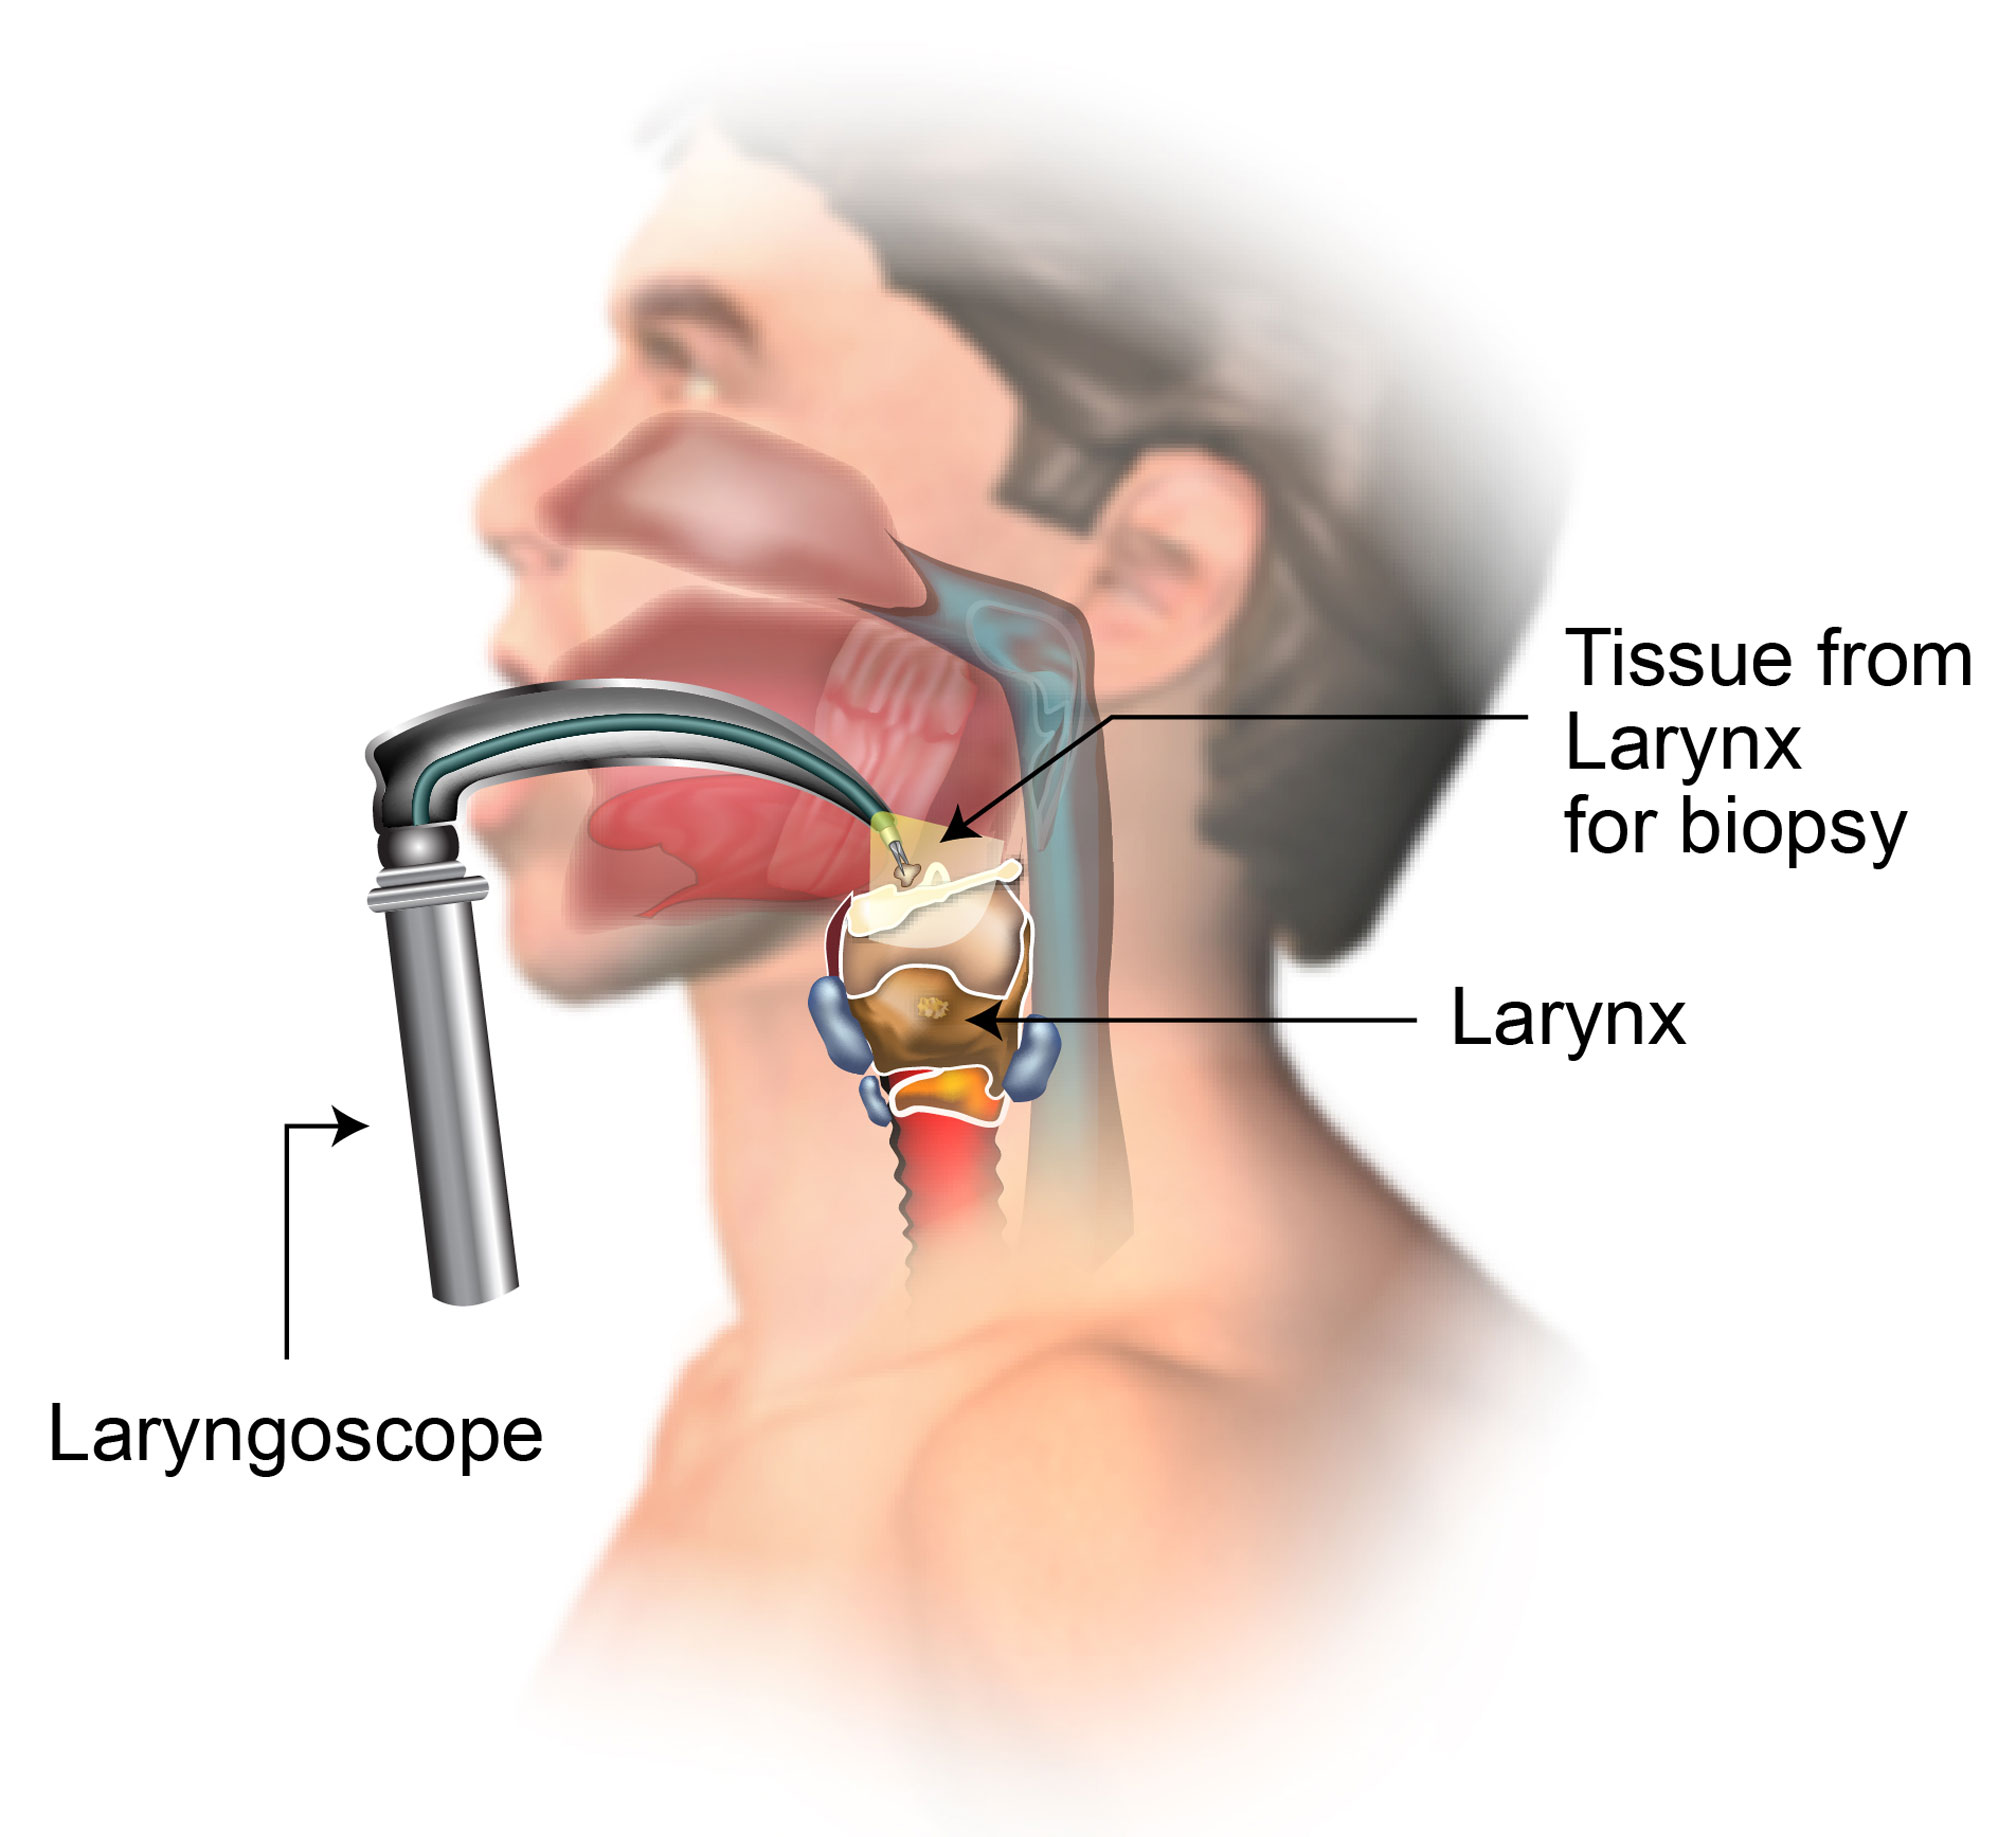 Endoscopic Biopsy